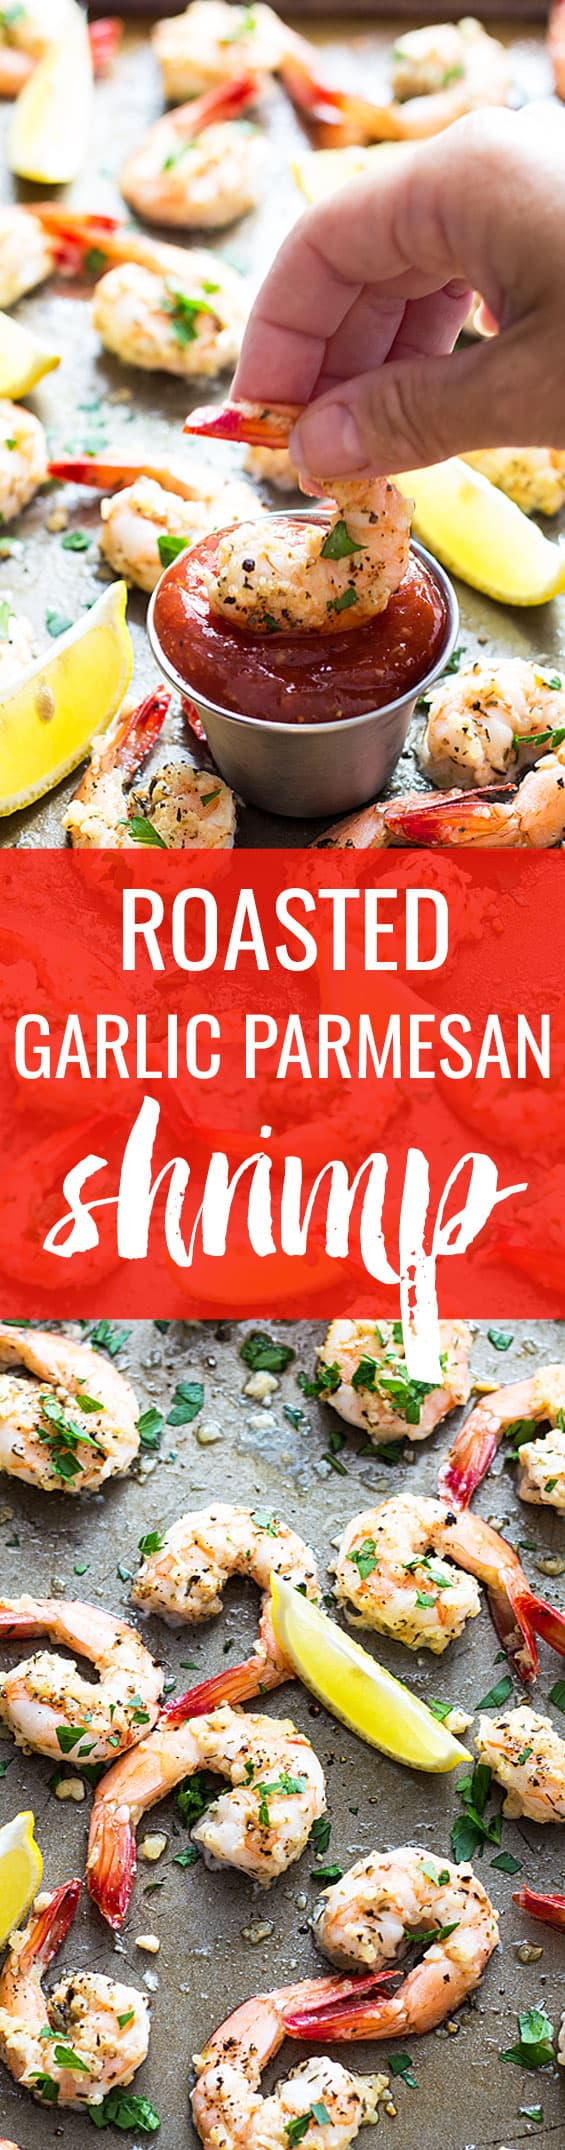 Roasted Garlic Parmesan Shrimp - Just 20 minutes is all it takes for the most savory and flavorful shrimp!